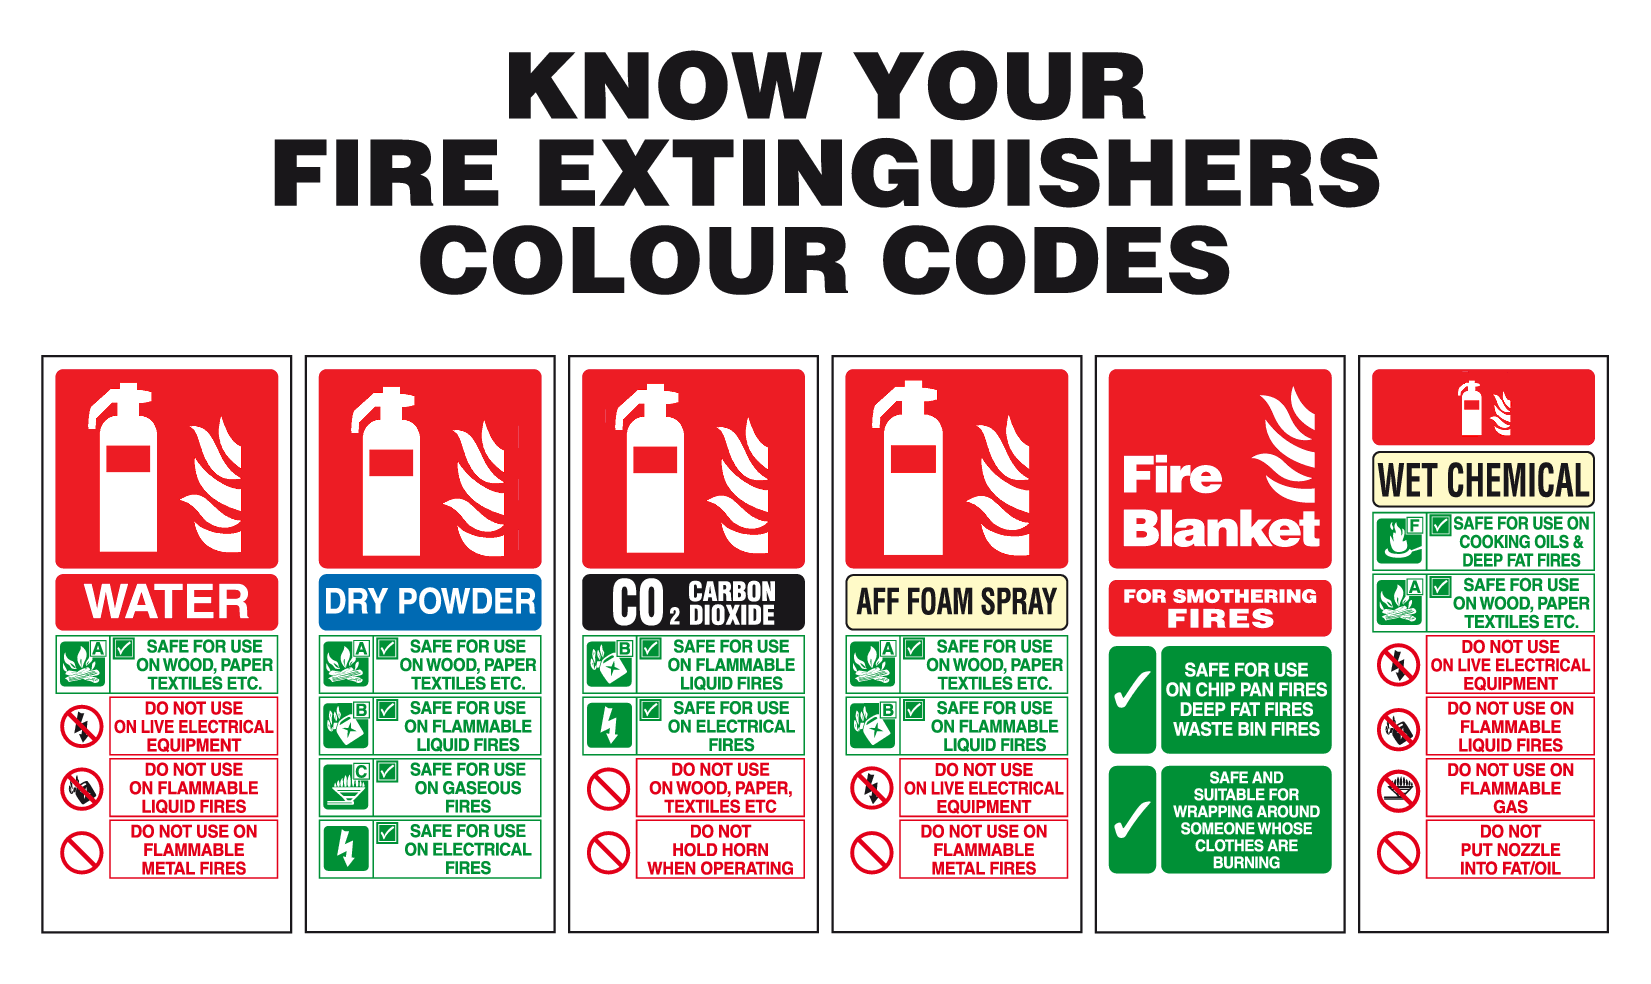 Fire Extinguisher Guide Fire Extinguisher Colour Codes Signs